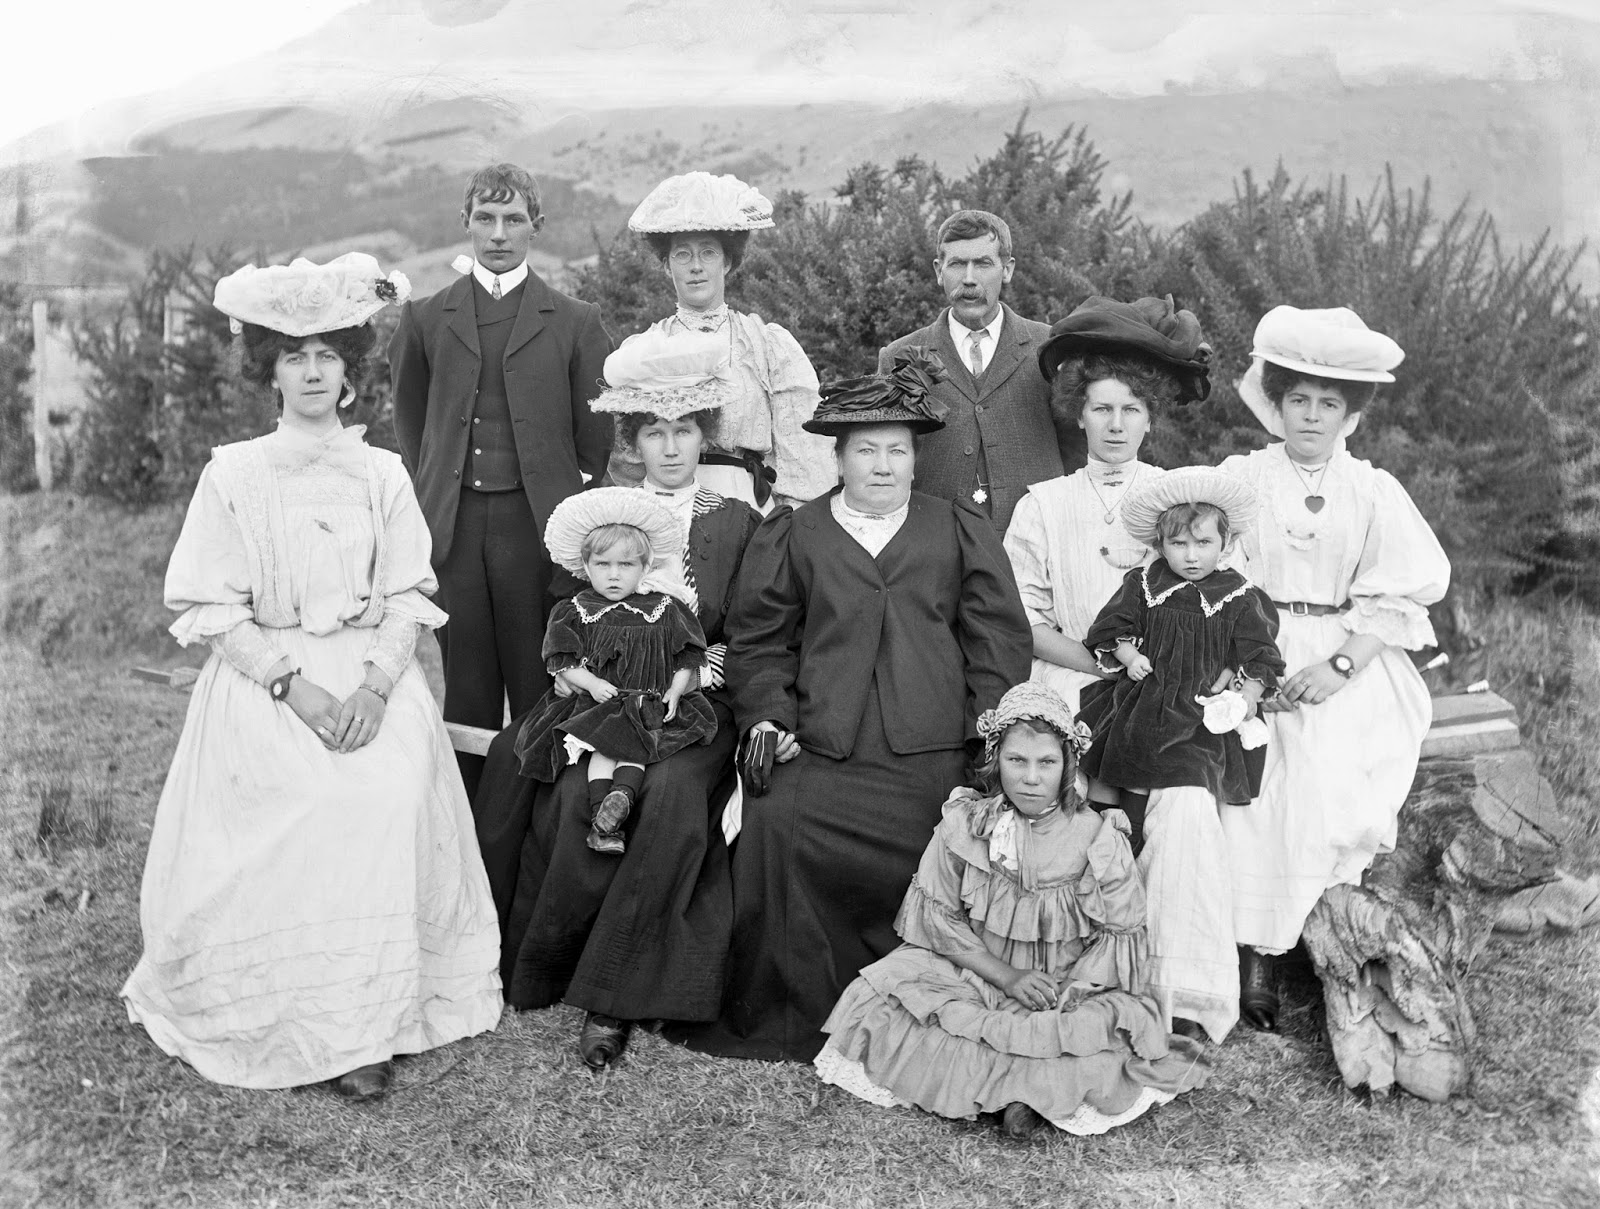 Adam MacLay - Family group including children in the countryside, 1905-26.jpg